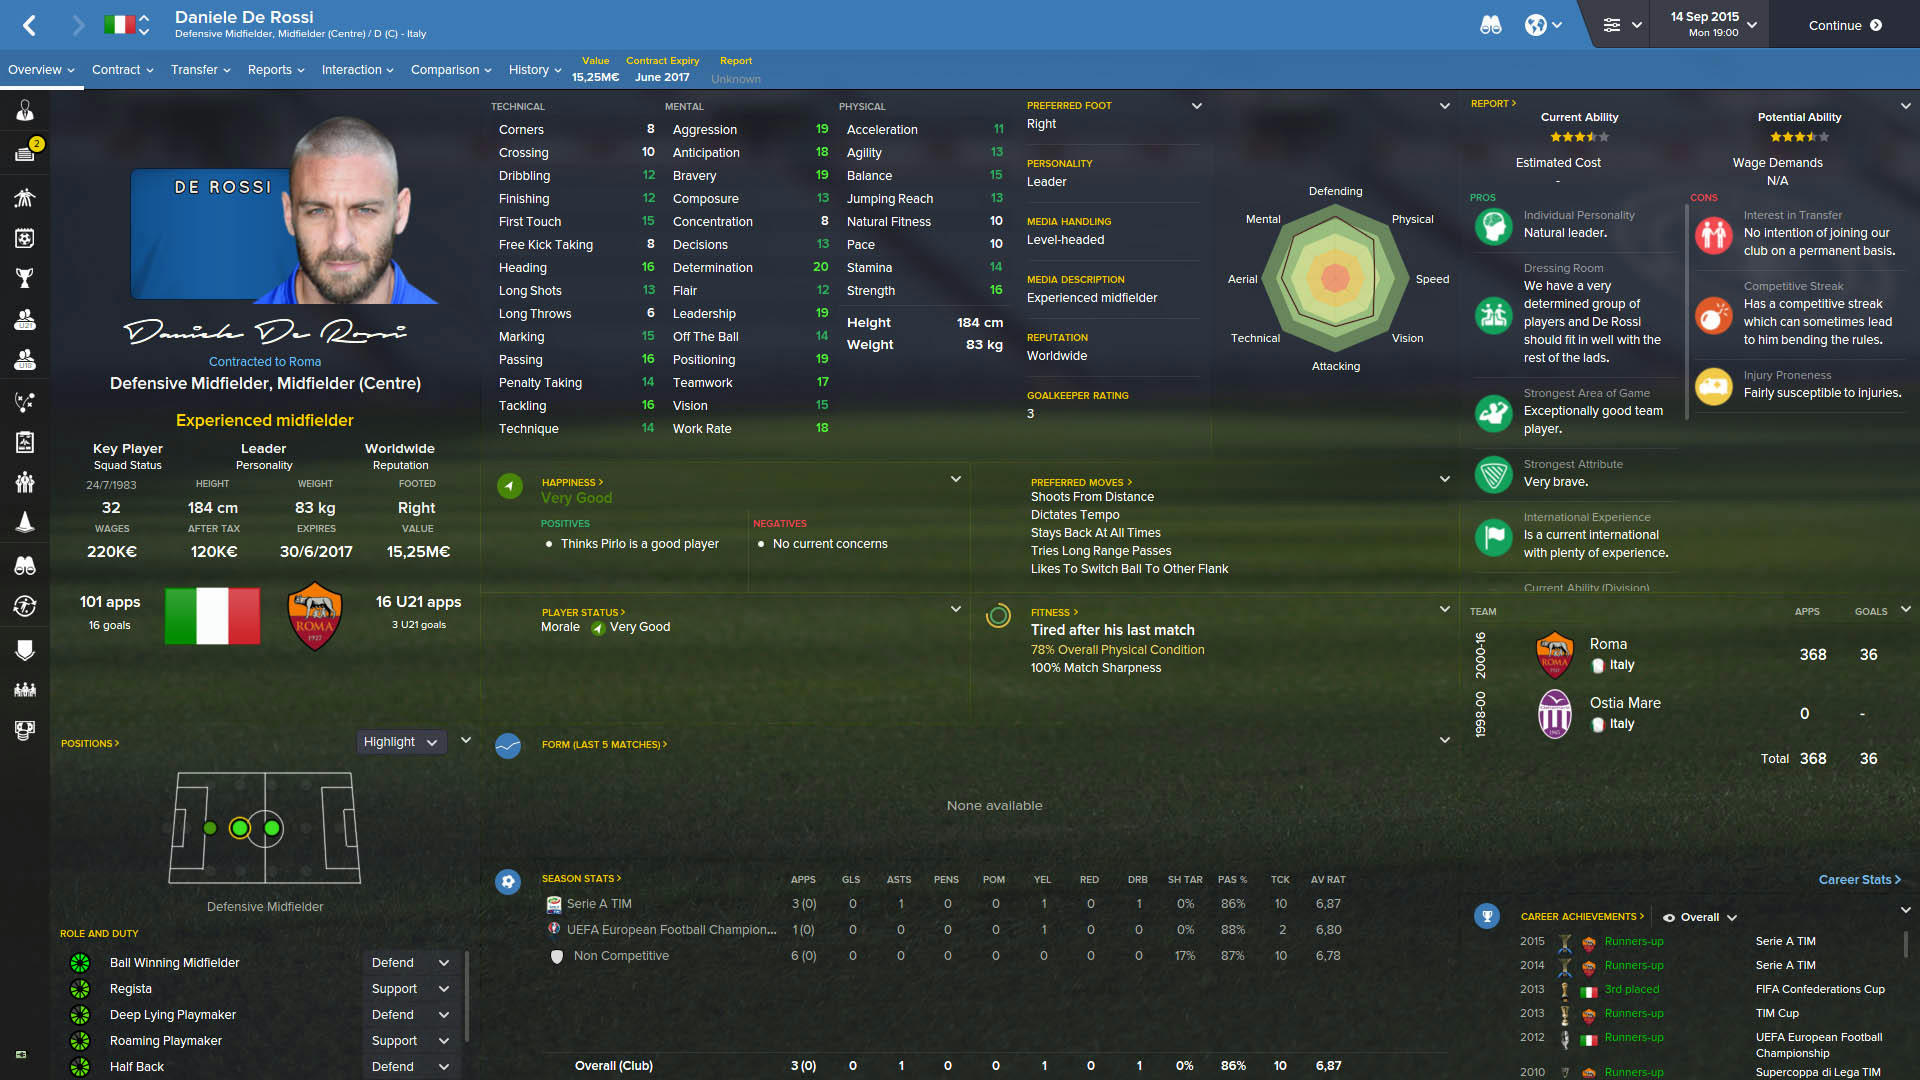 Football Manager 2016 Vitrex16 Skin Player Profile Screen